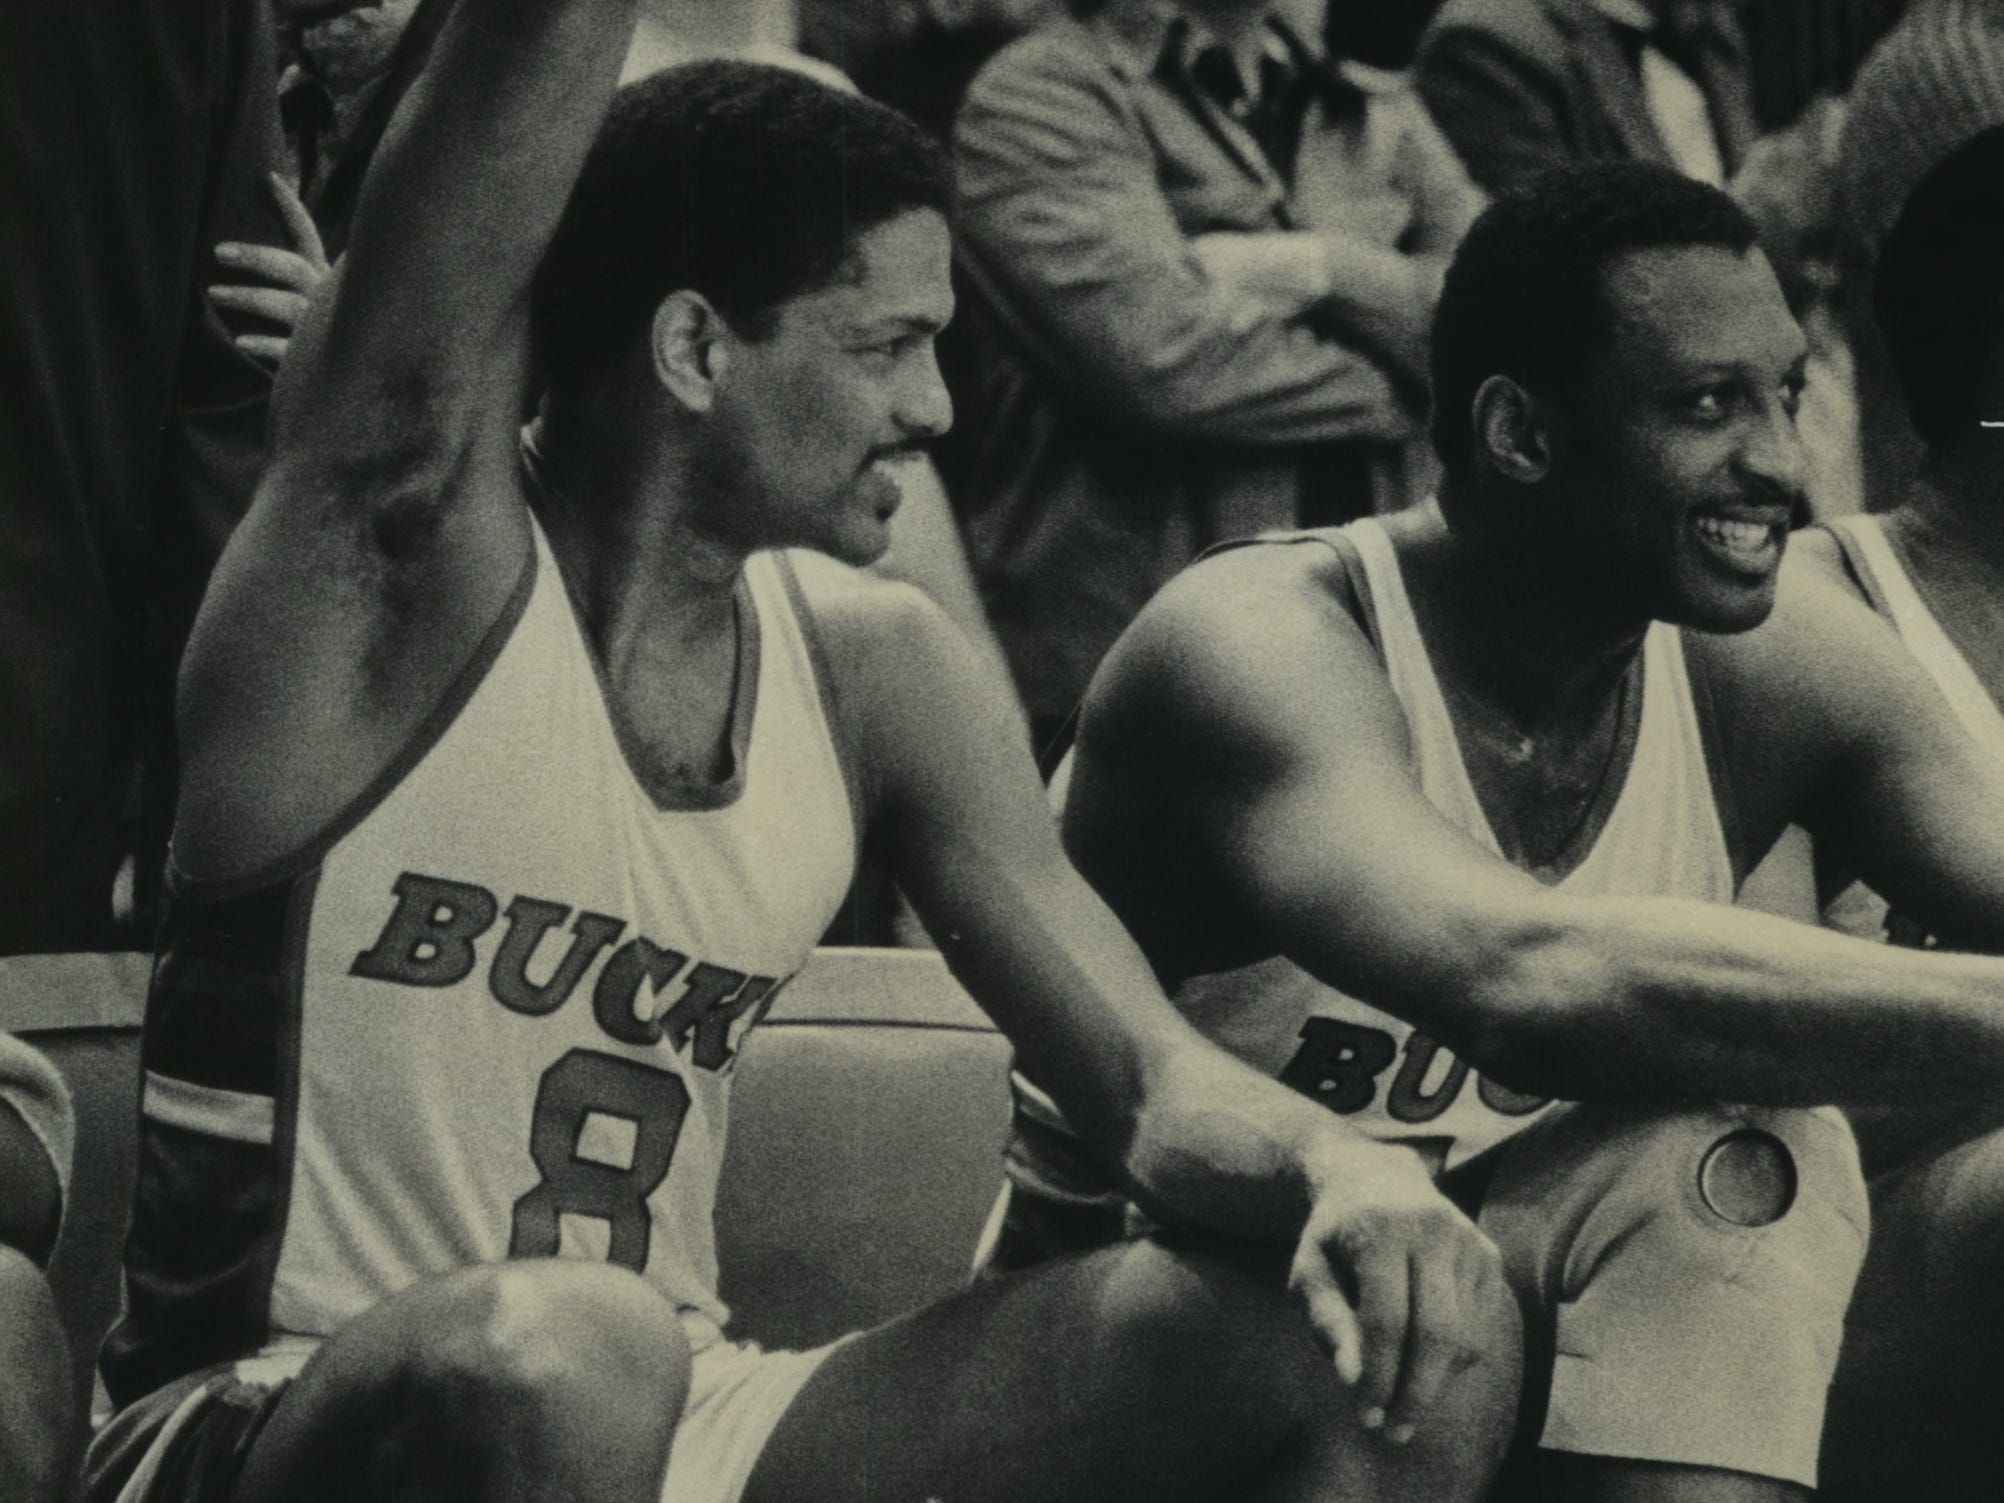 1983: Marques Johnson (waving a towel)  and Bob Lanier savor the moment near the end of the Bucks' playoff victory over the Boston Celtics at the Milwaukee Arena, 107-93, on May 2, 1983. The Bucks swept the Celtics in the Eastern Conference Semifinals, only to lose in the conference finals to the Philadelphia 76ers. This photo was published in the May 3, 1983, Milwaukee Sentinel.